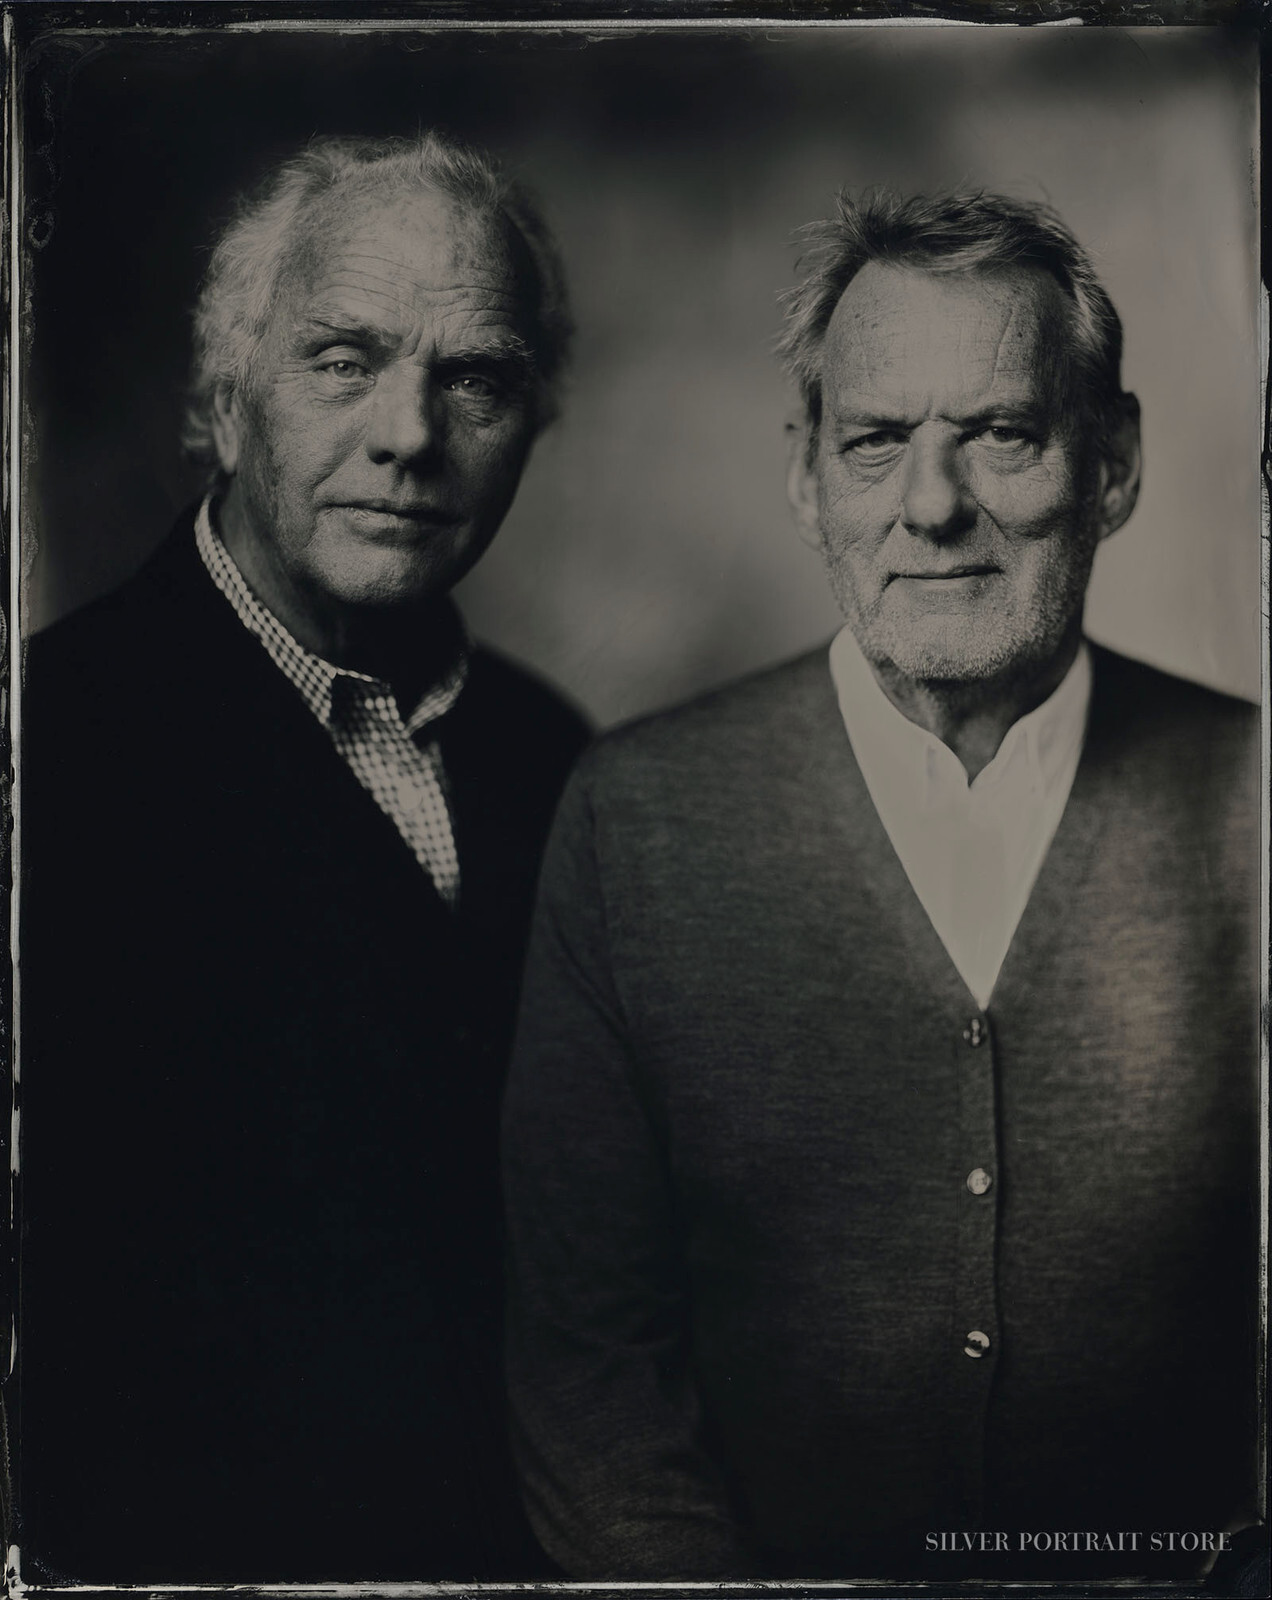 Sandor & Hans-Silver Portrait Store-scan from Wet plate collodion-Tintype 20 x 25 cm.